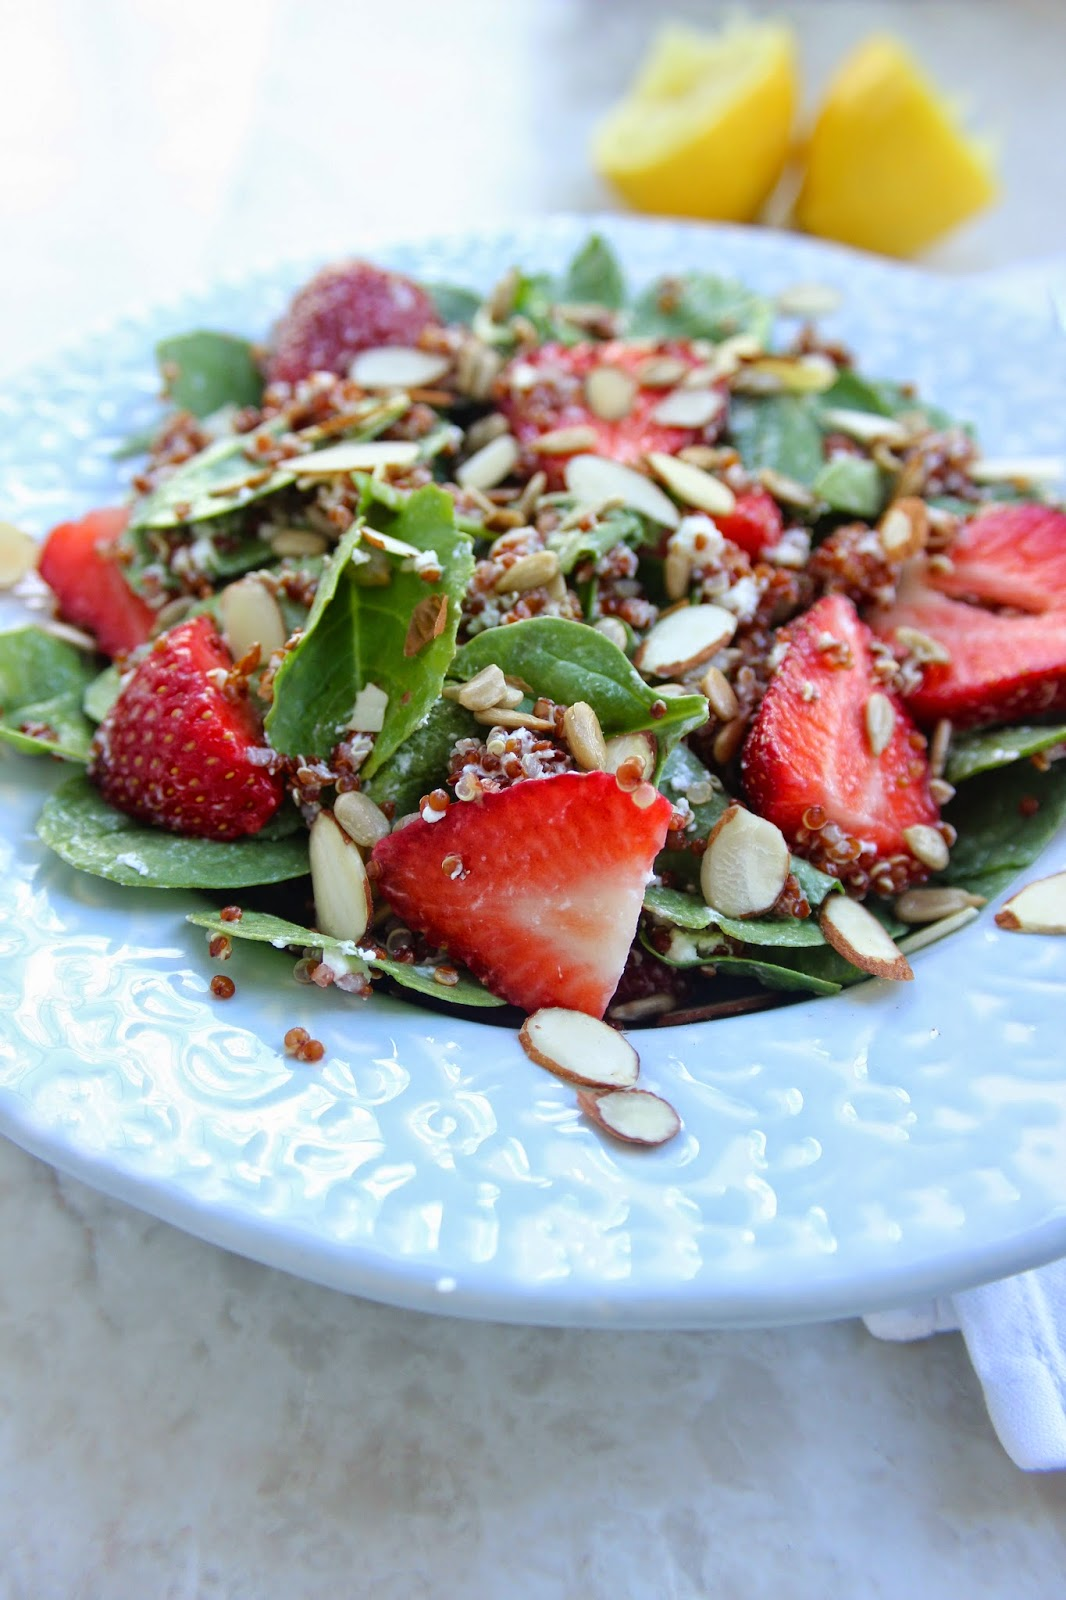 Stew or a Story: Spinach Strawberry Salad with Coconut Quinoa and ...